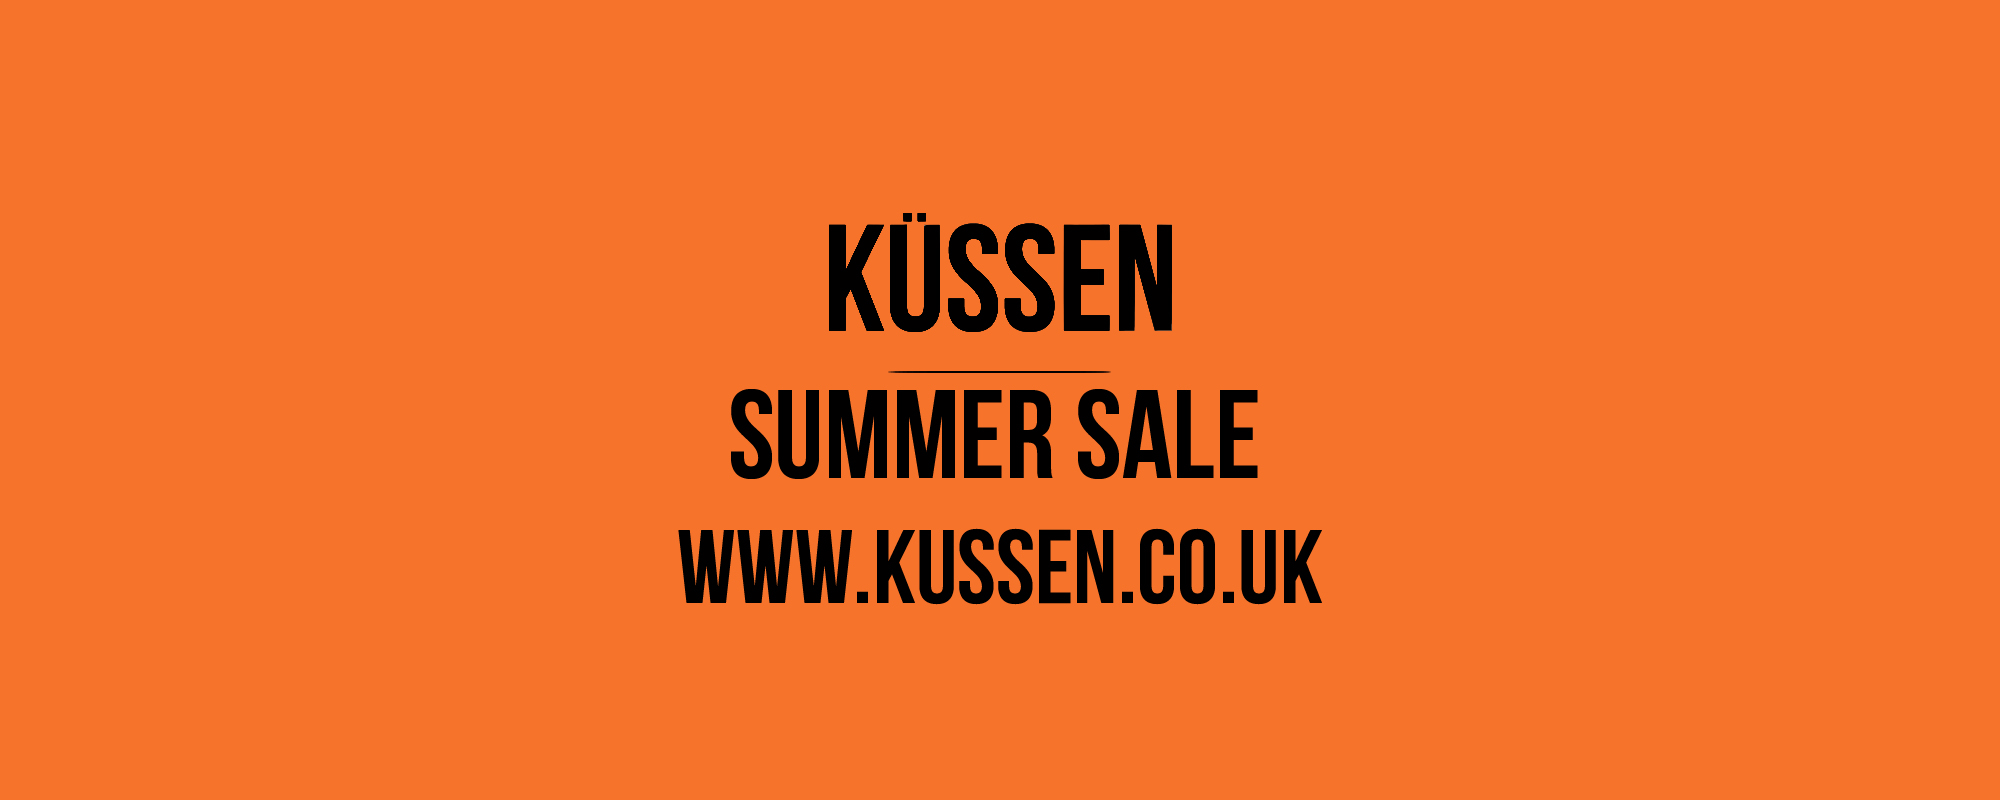 THE MASSIVE SUMMER SALE - GET KUSSEN FRESH FOR SUMMER